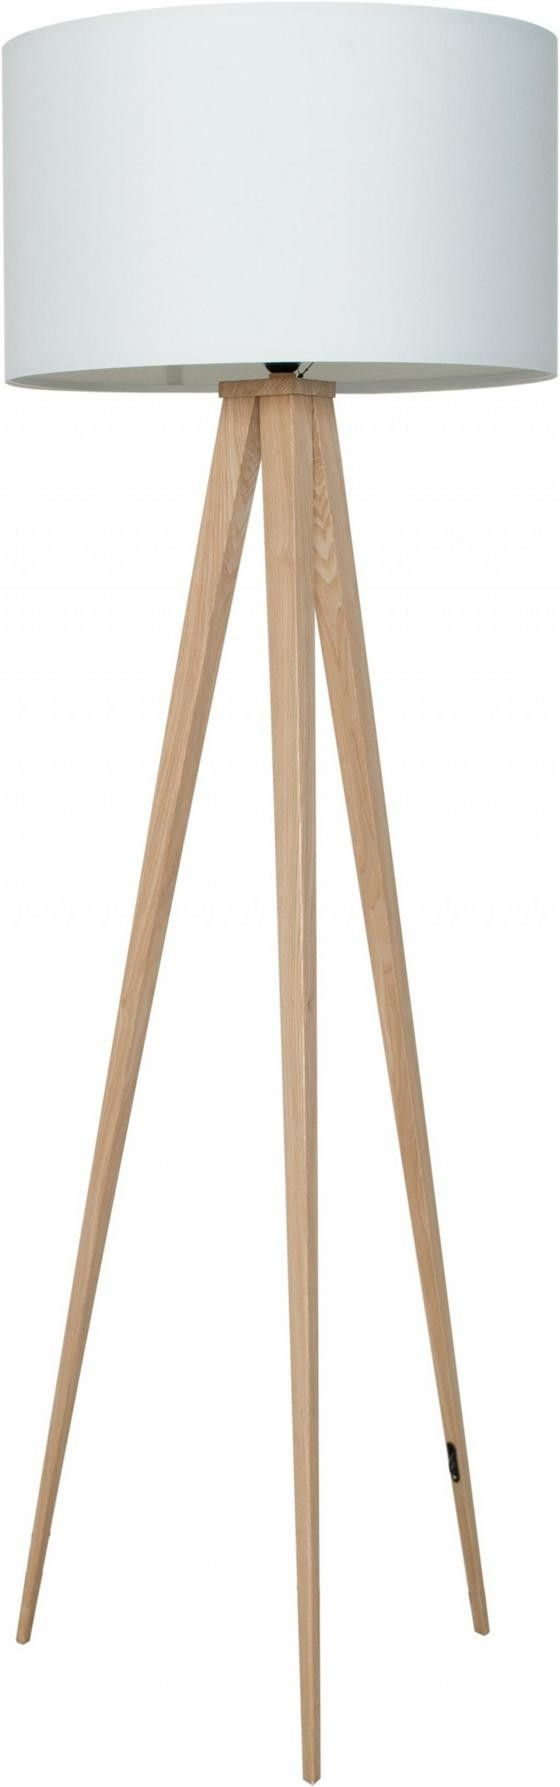 Zuiver Staande lamp Tripod hout/wit design lamp